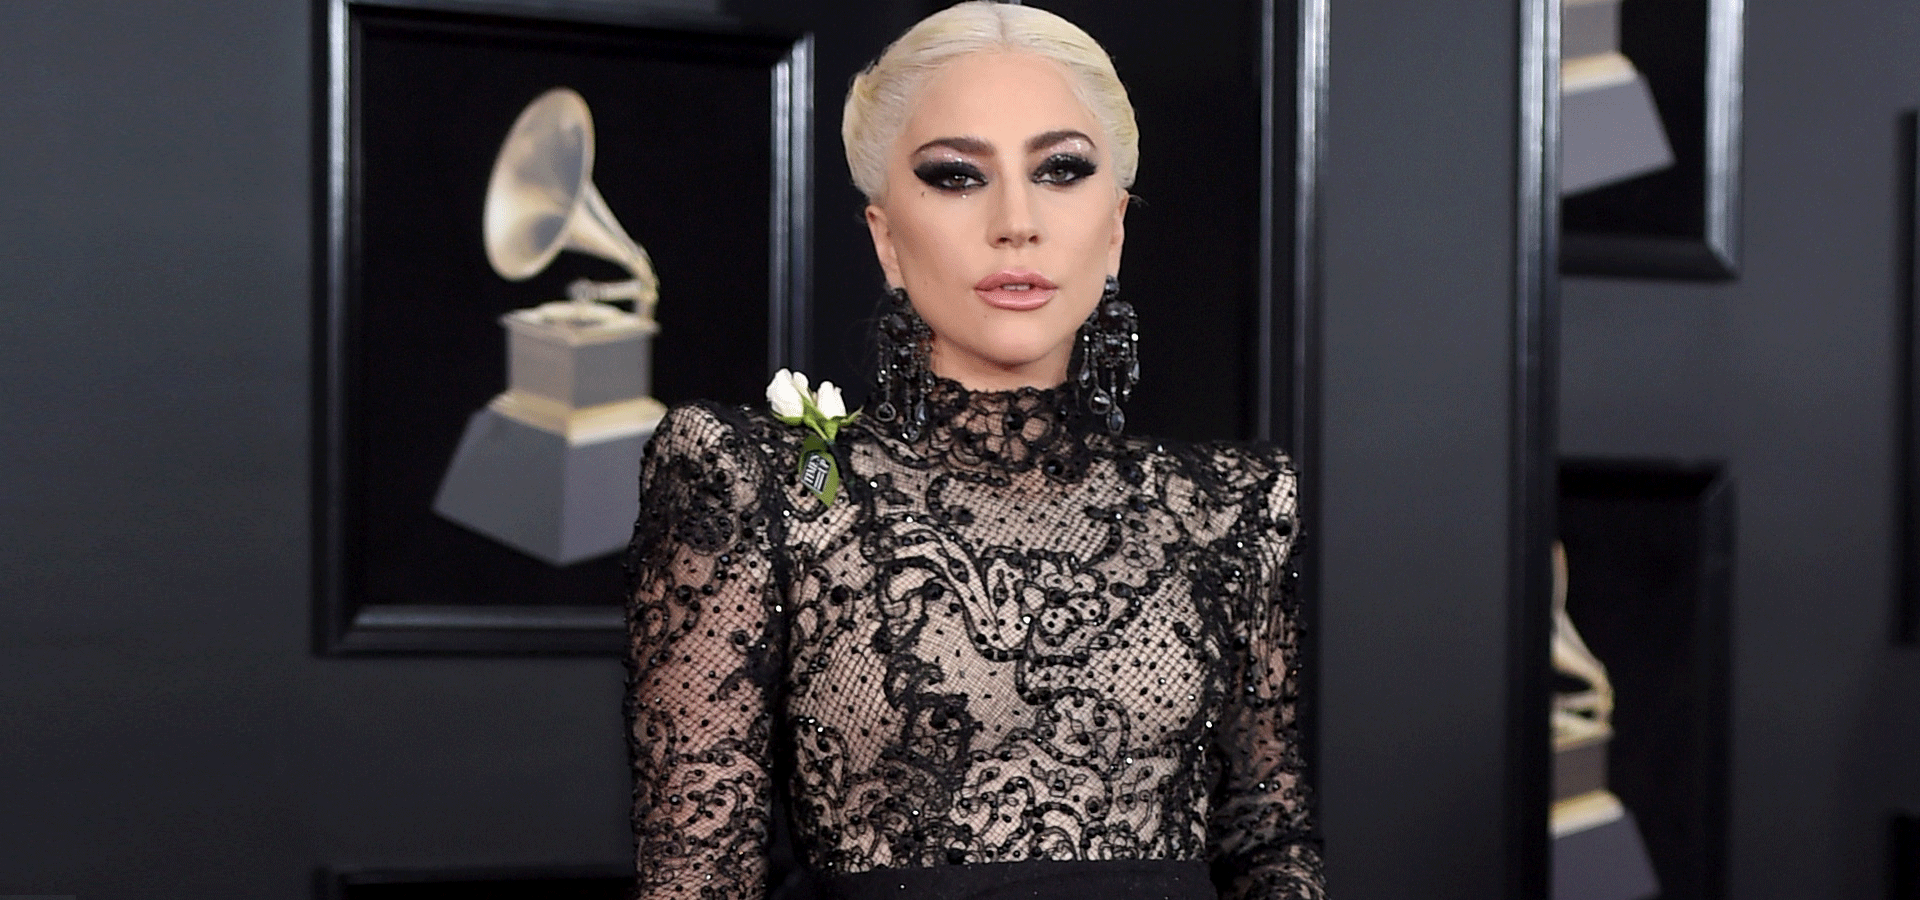 2018 Grammys News, Pictures, And Videos